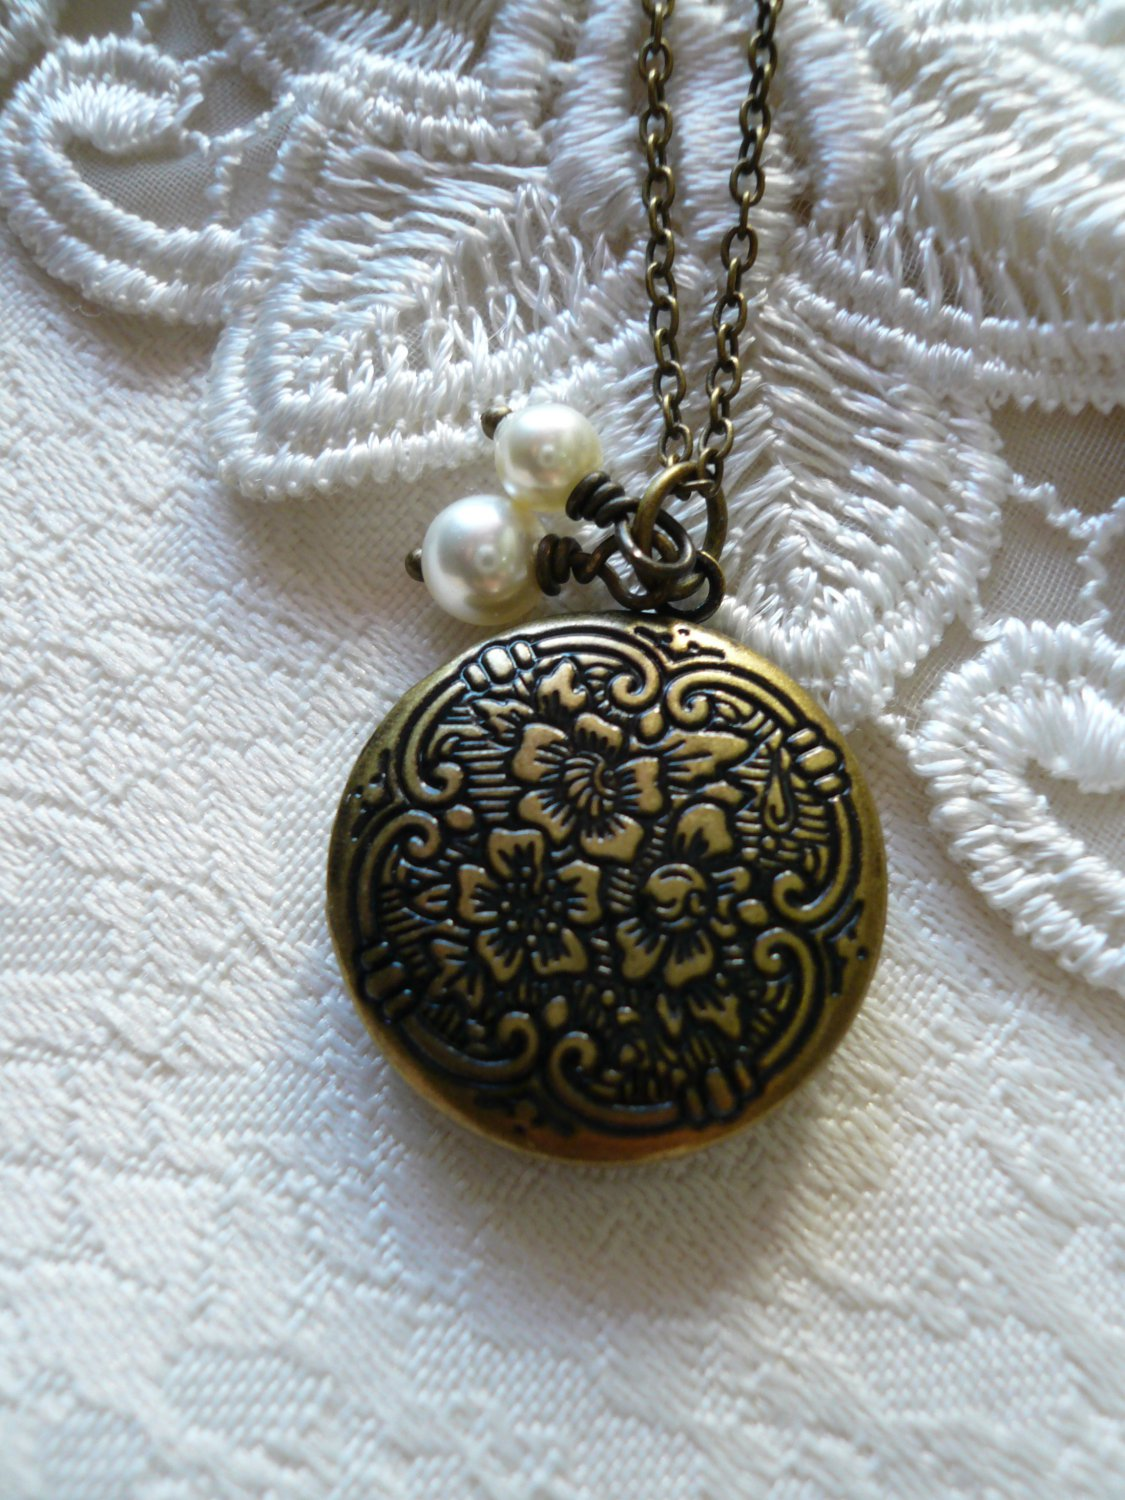 BLISS Small Round Flower Locket Necklace